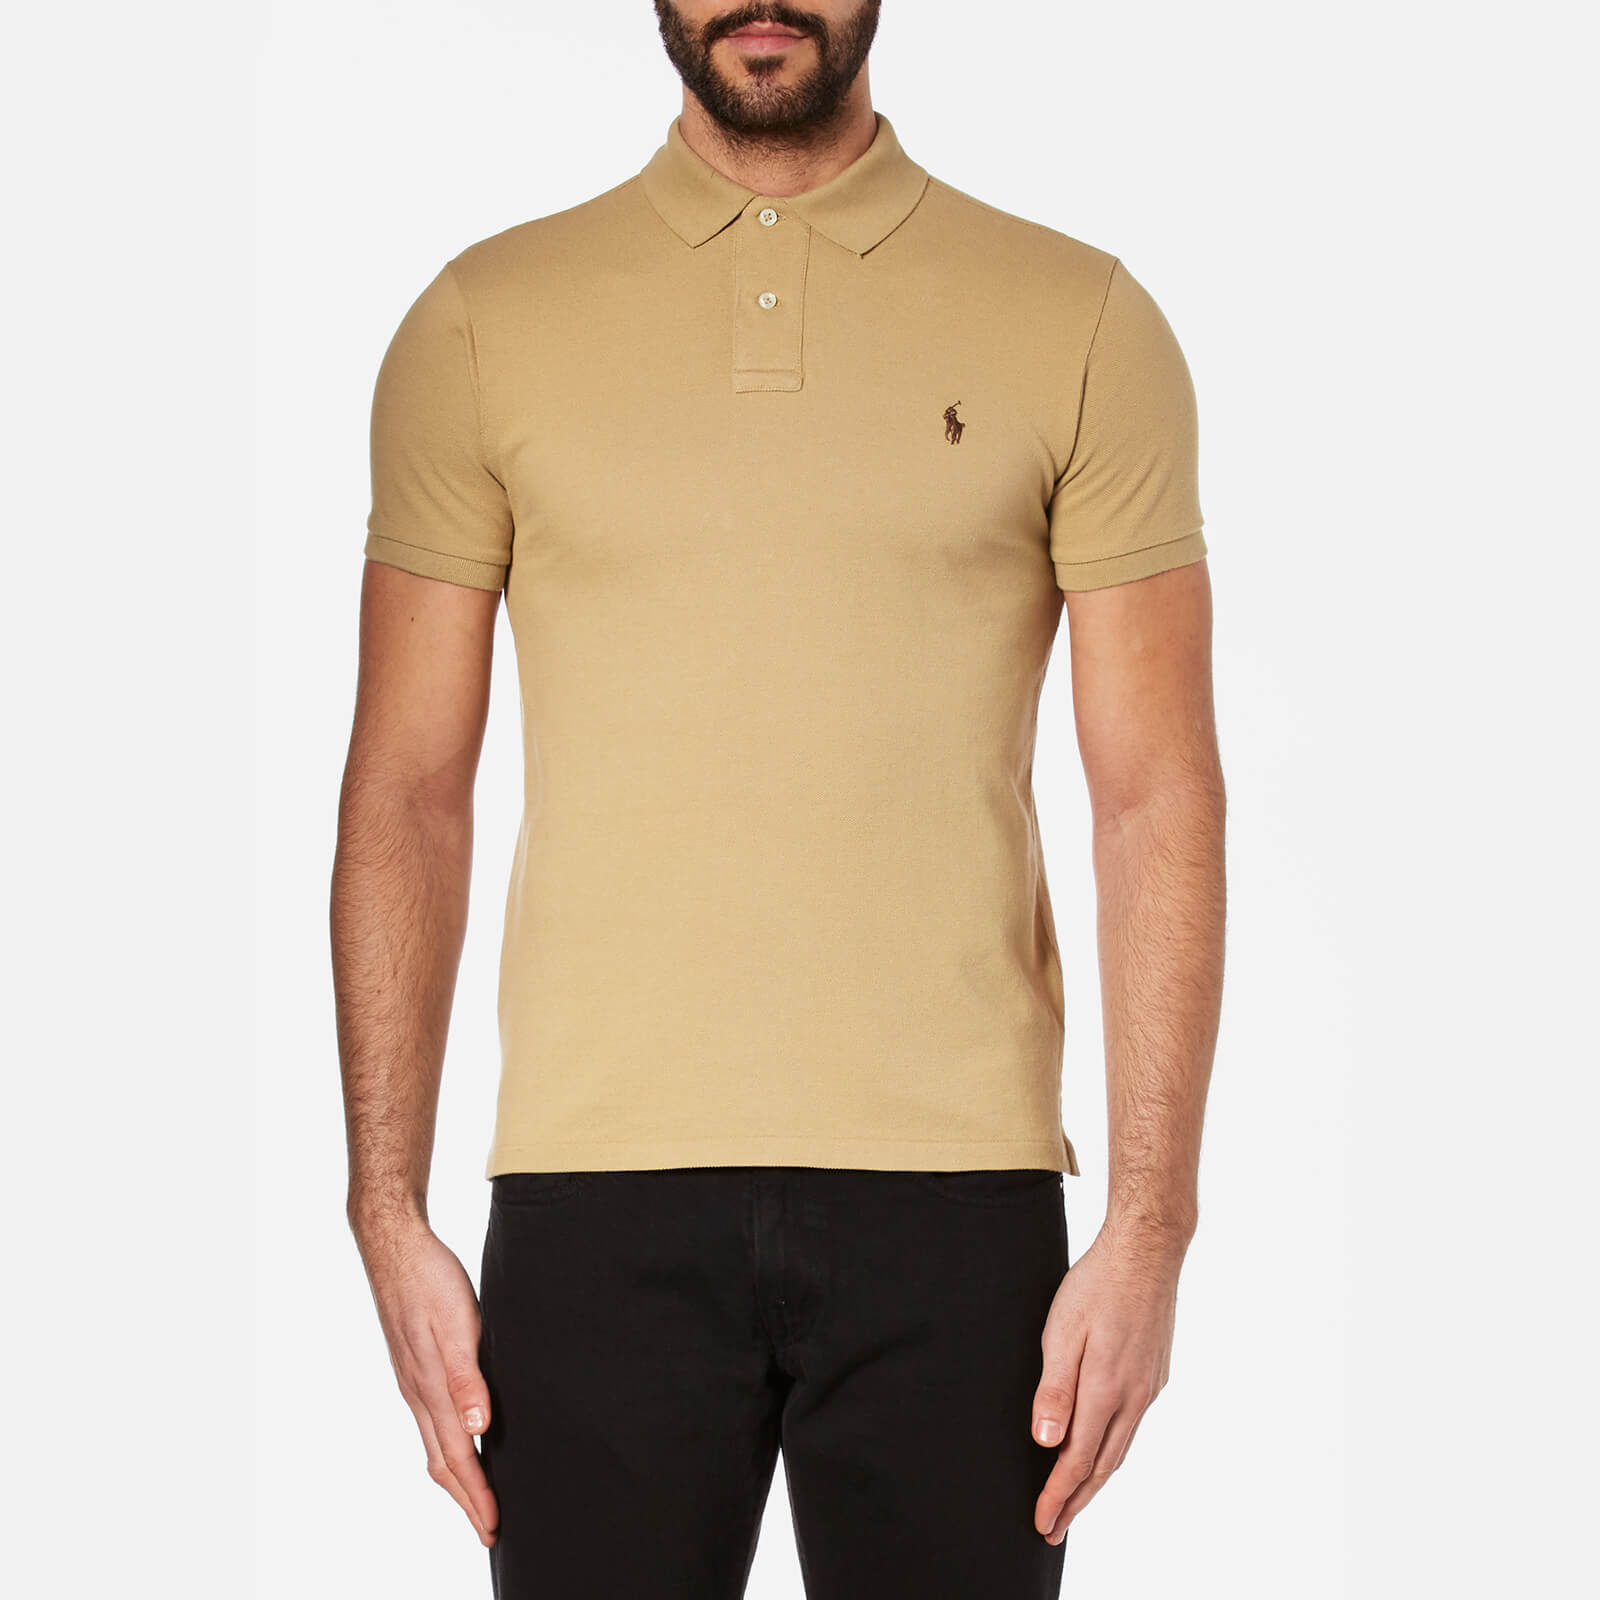 af4ed4b3 Polo Ralph Lauren Men's Slim Fit Short Sleeved Polo Shirt - Luxury Tan -  Free UK Delivery over £50